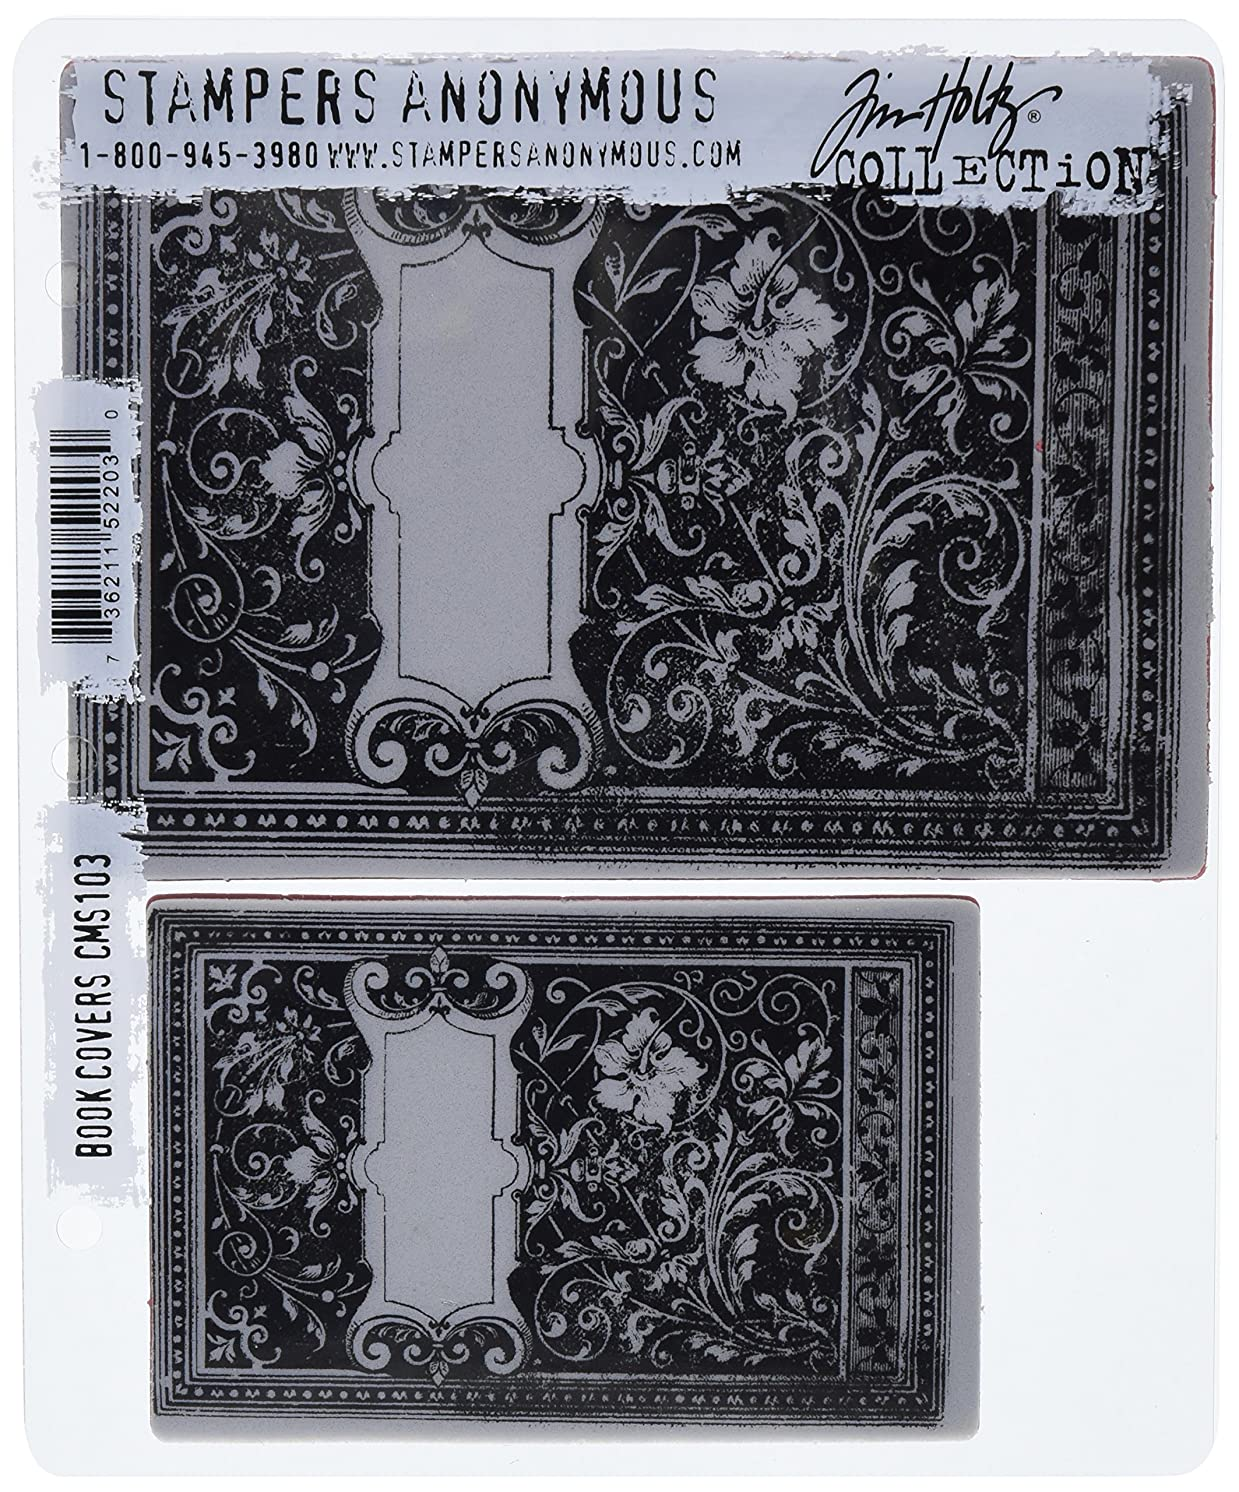 Stampers Anonymous Tim Holtz Cling Rubber Stamp Set, Book Covers